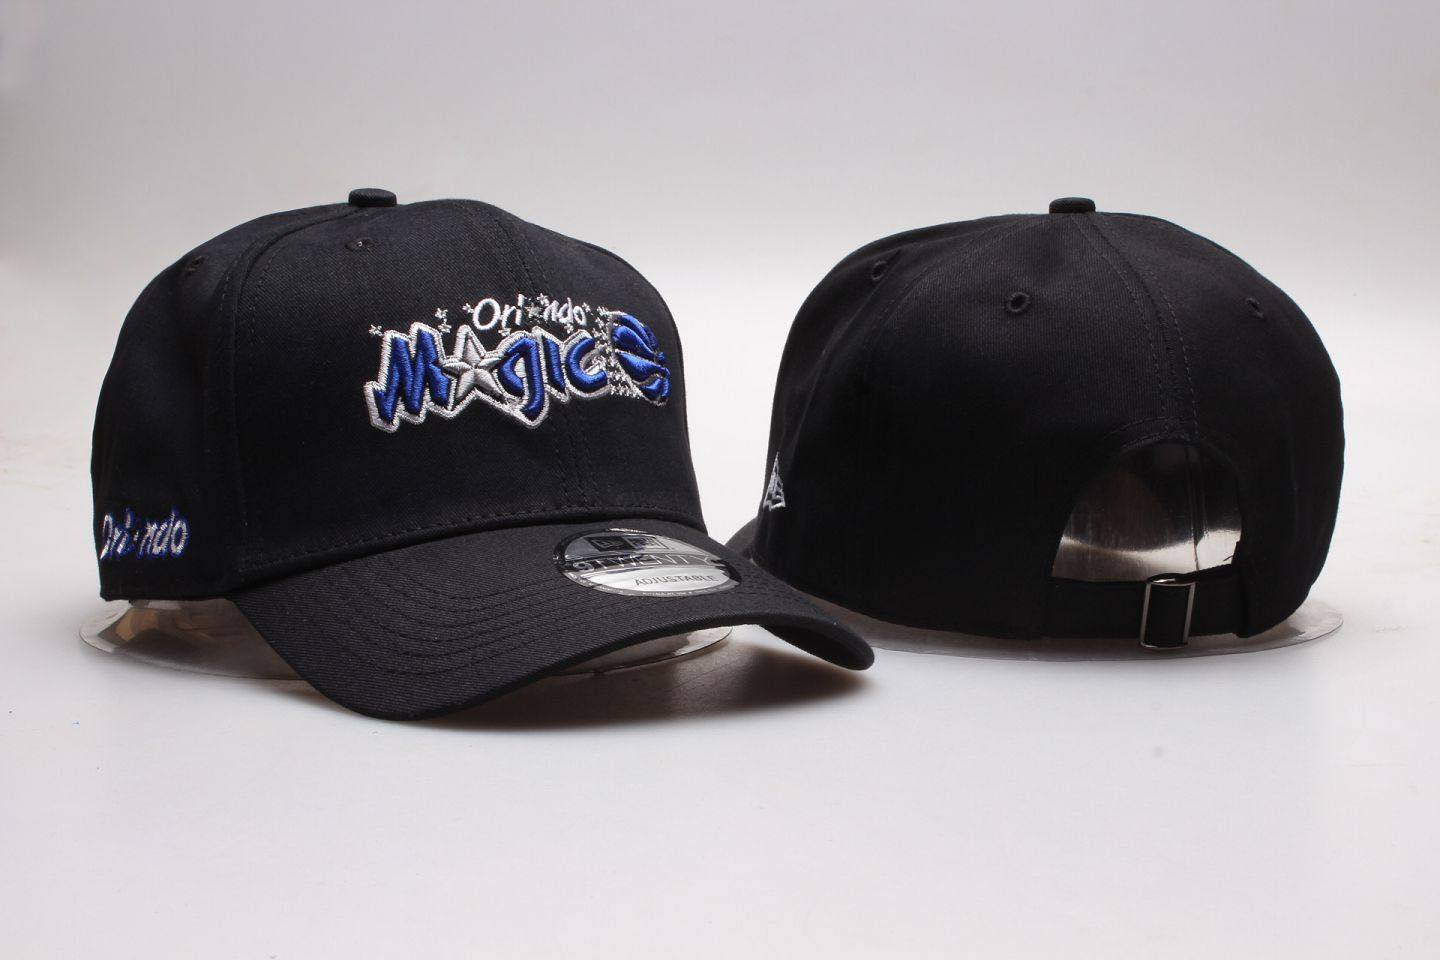 NBA Orlando Magic Snapback hat 201811251